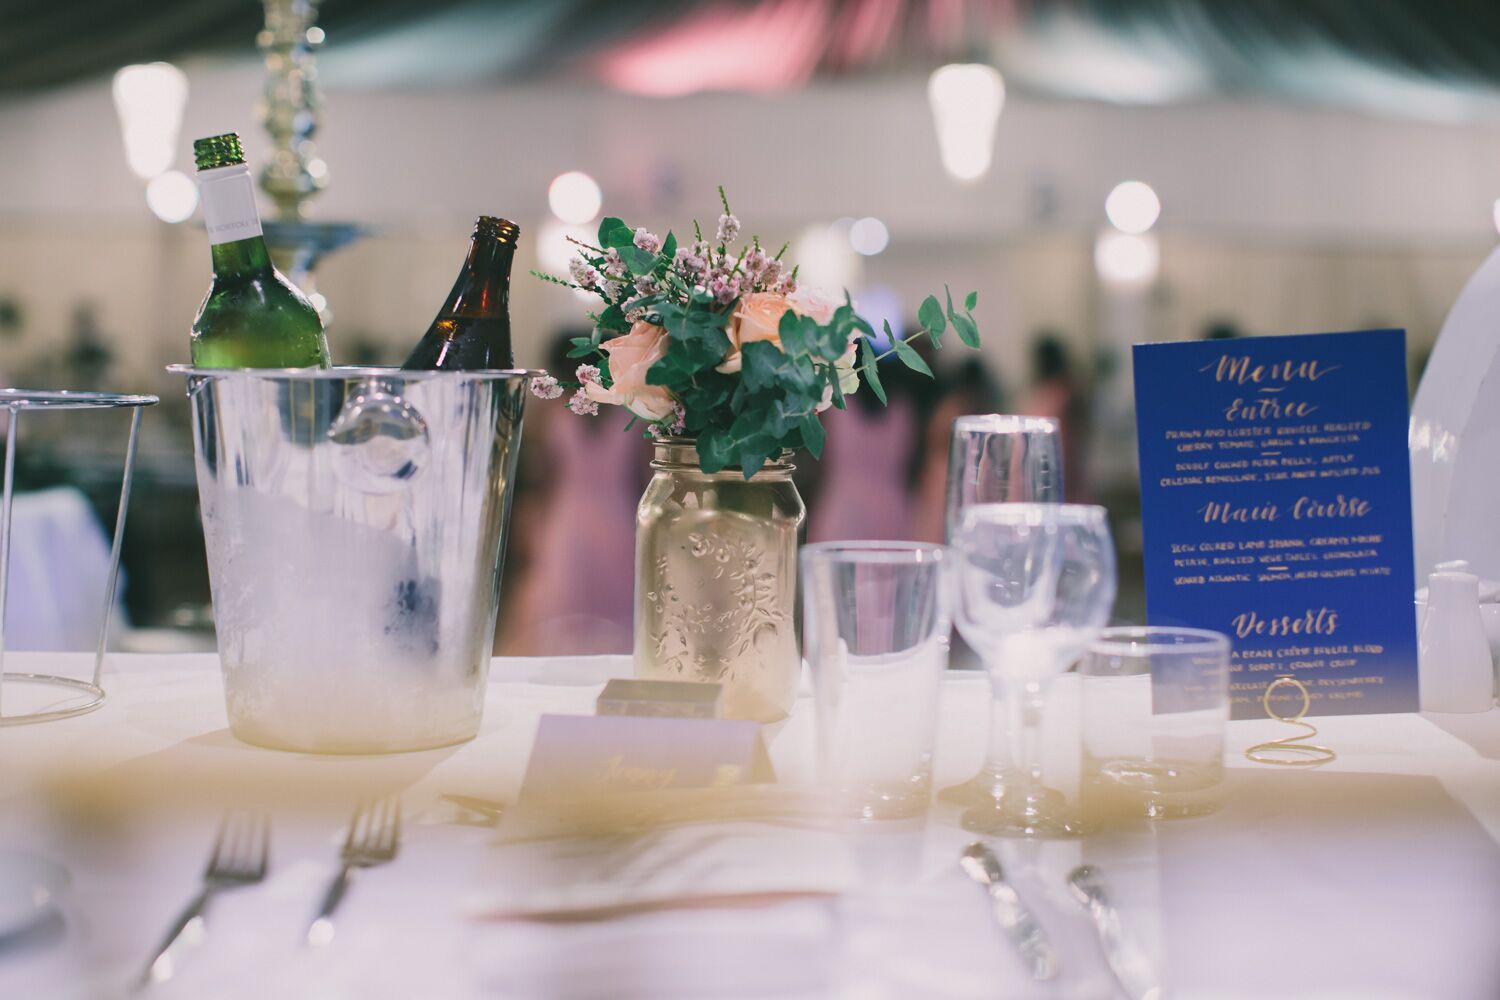 table setting with blue place card, gold bottle, and ice bucket with bottles